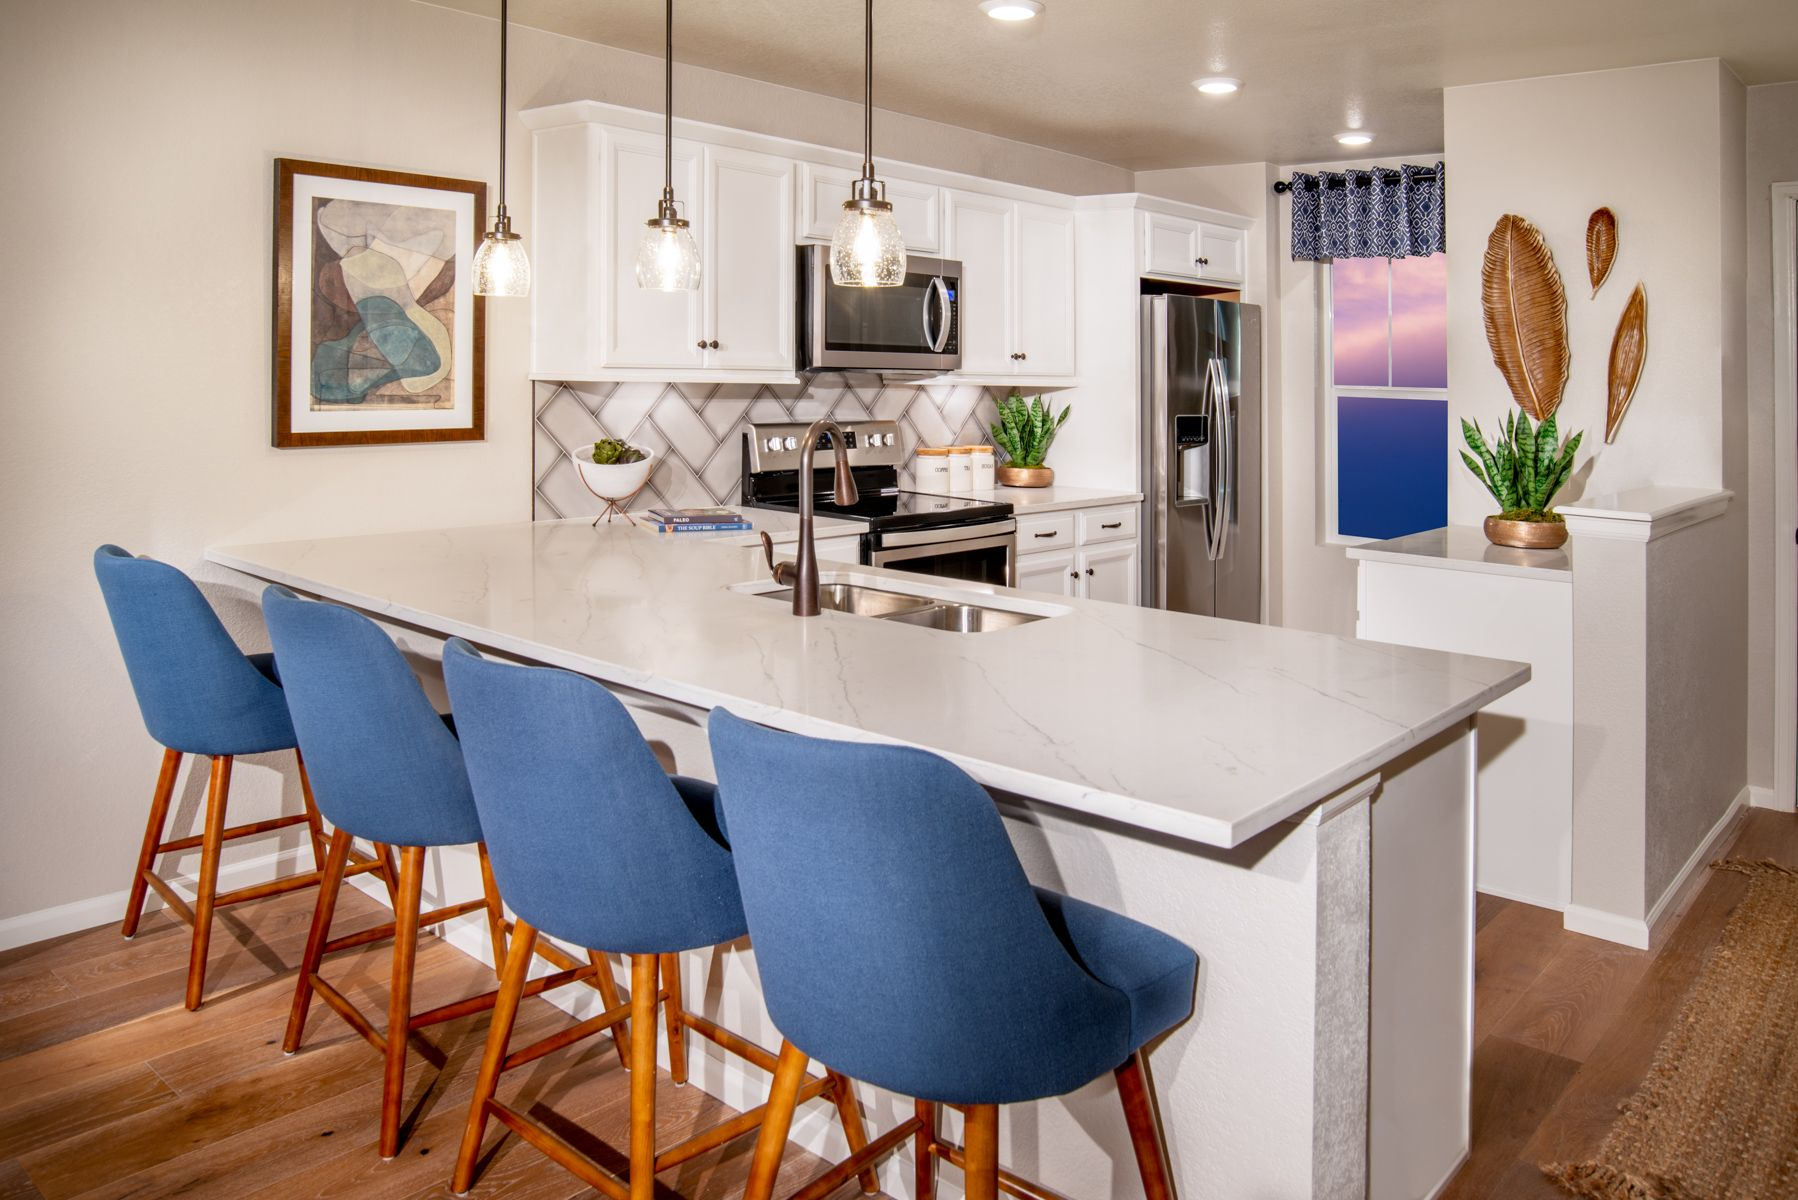 Kitchen featured in the Plan 1532 Modeled By KB Home in Fort Collins-Loveland, CO